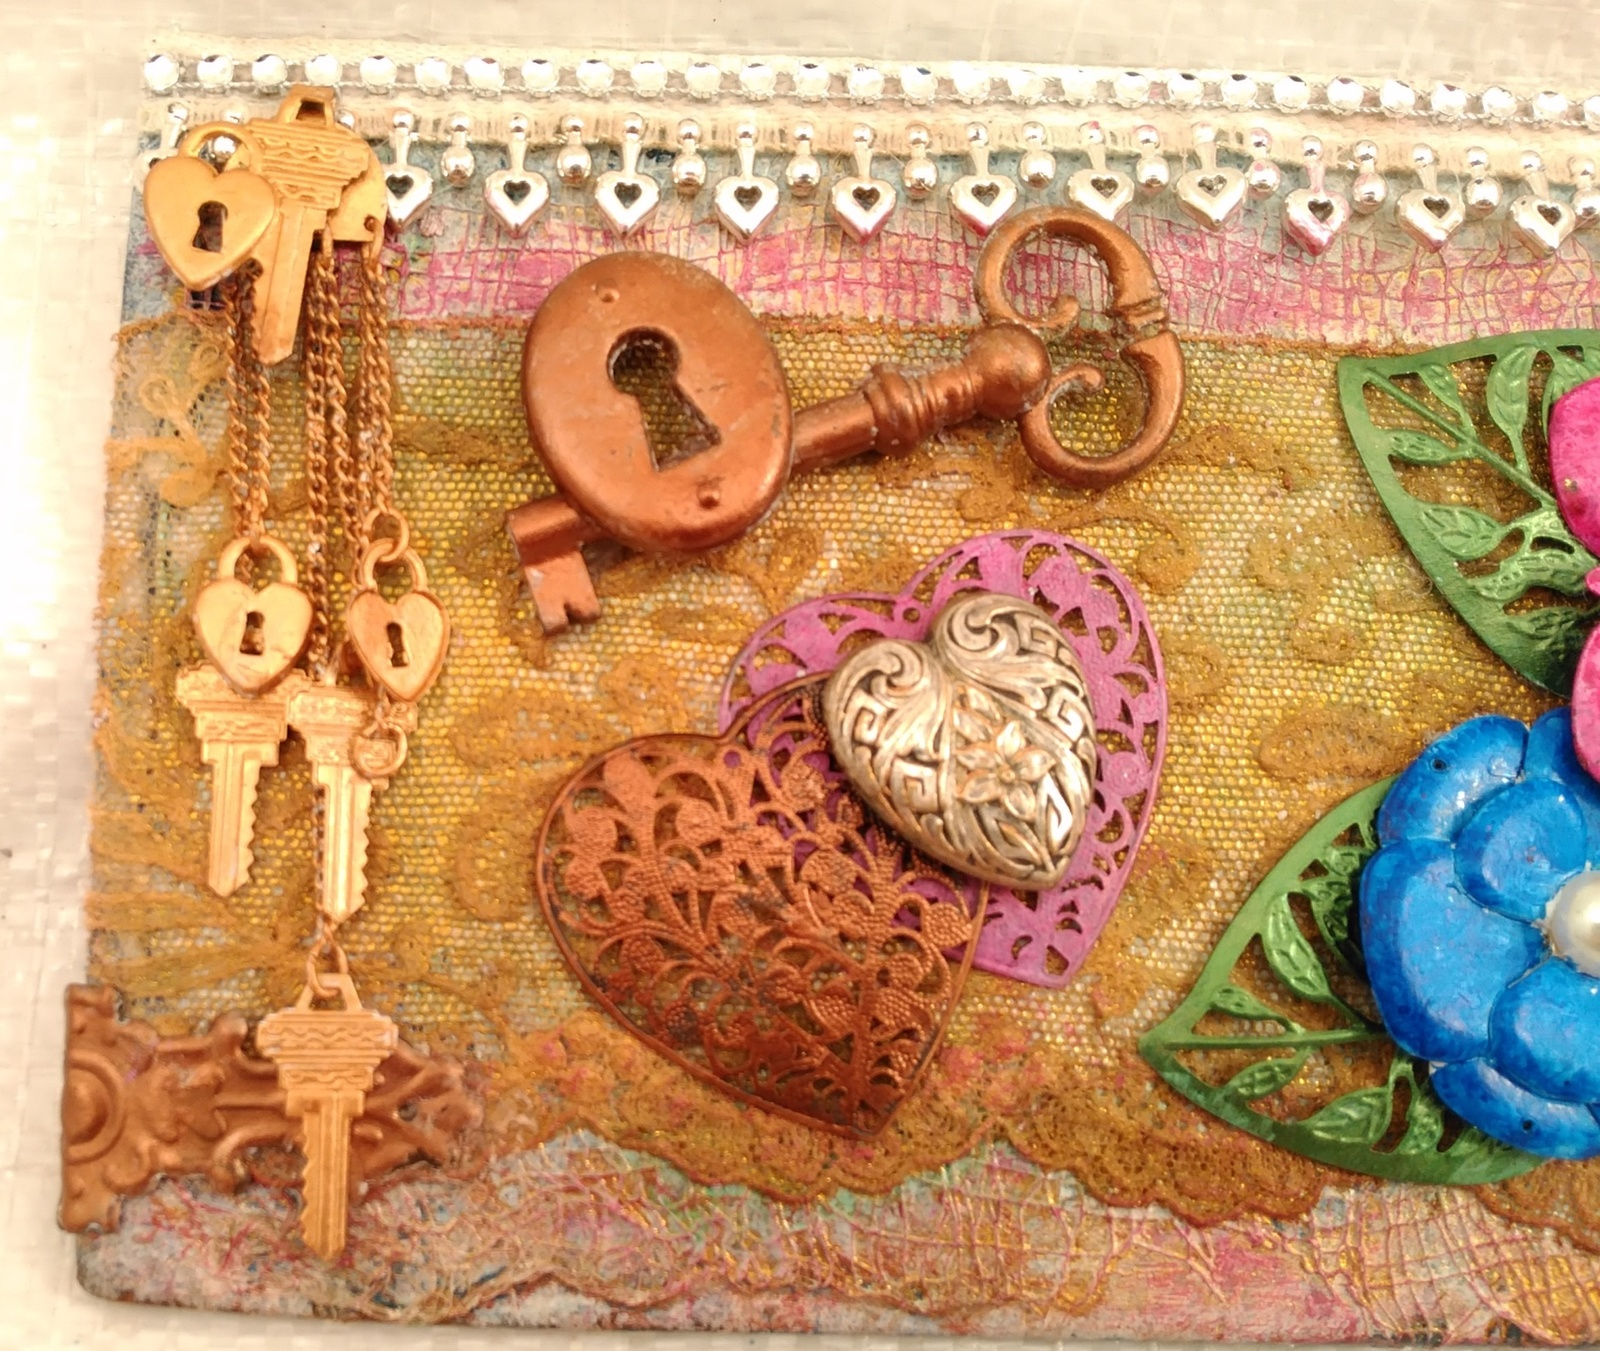 """Mixed media assemblage on board """"Reminisce"""" by Deboriah 12x5"""